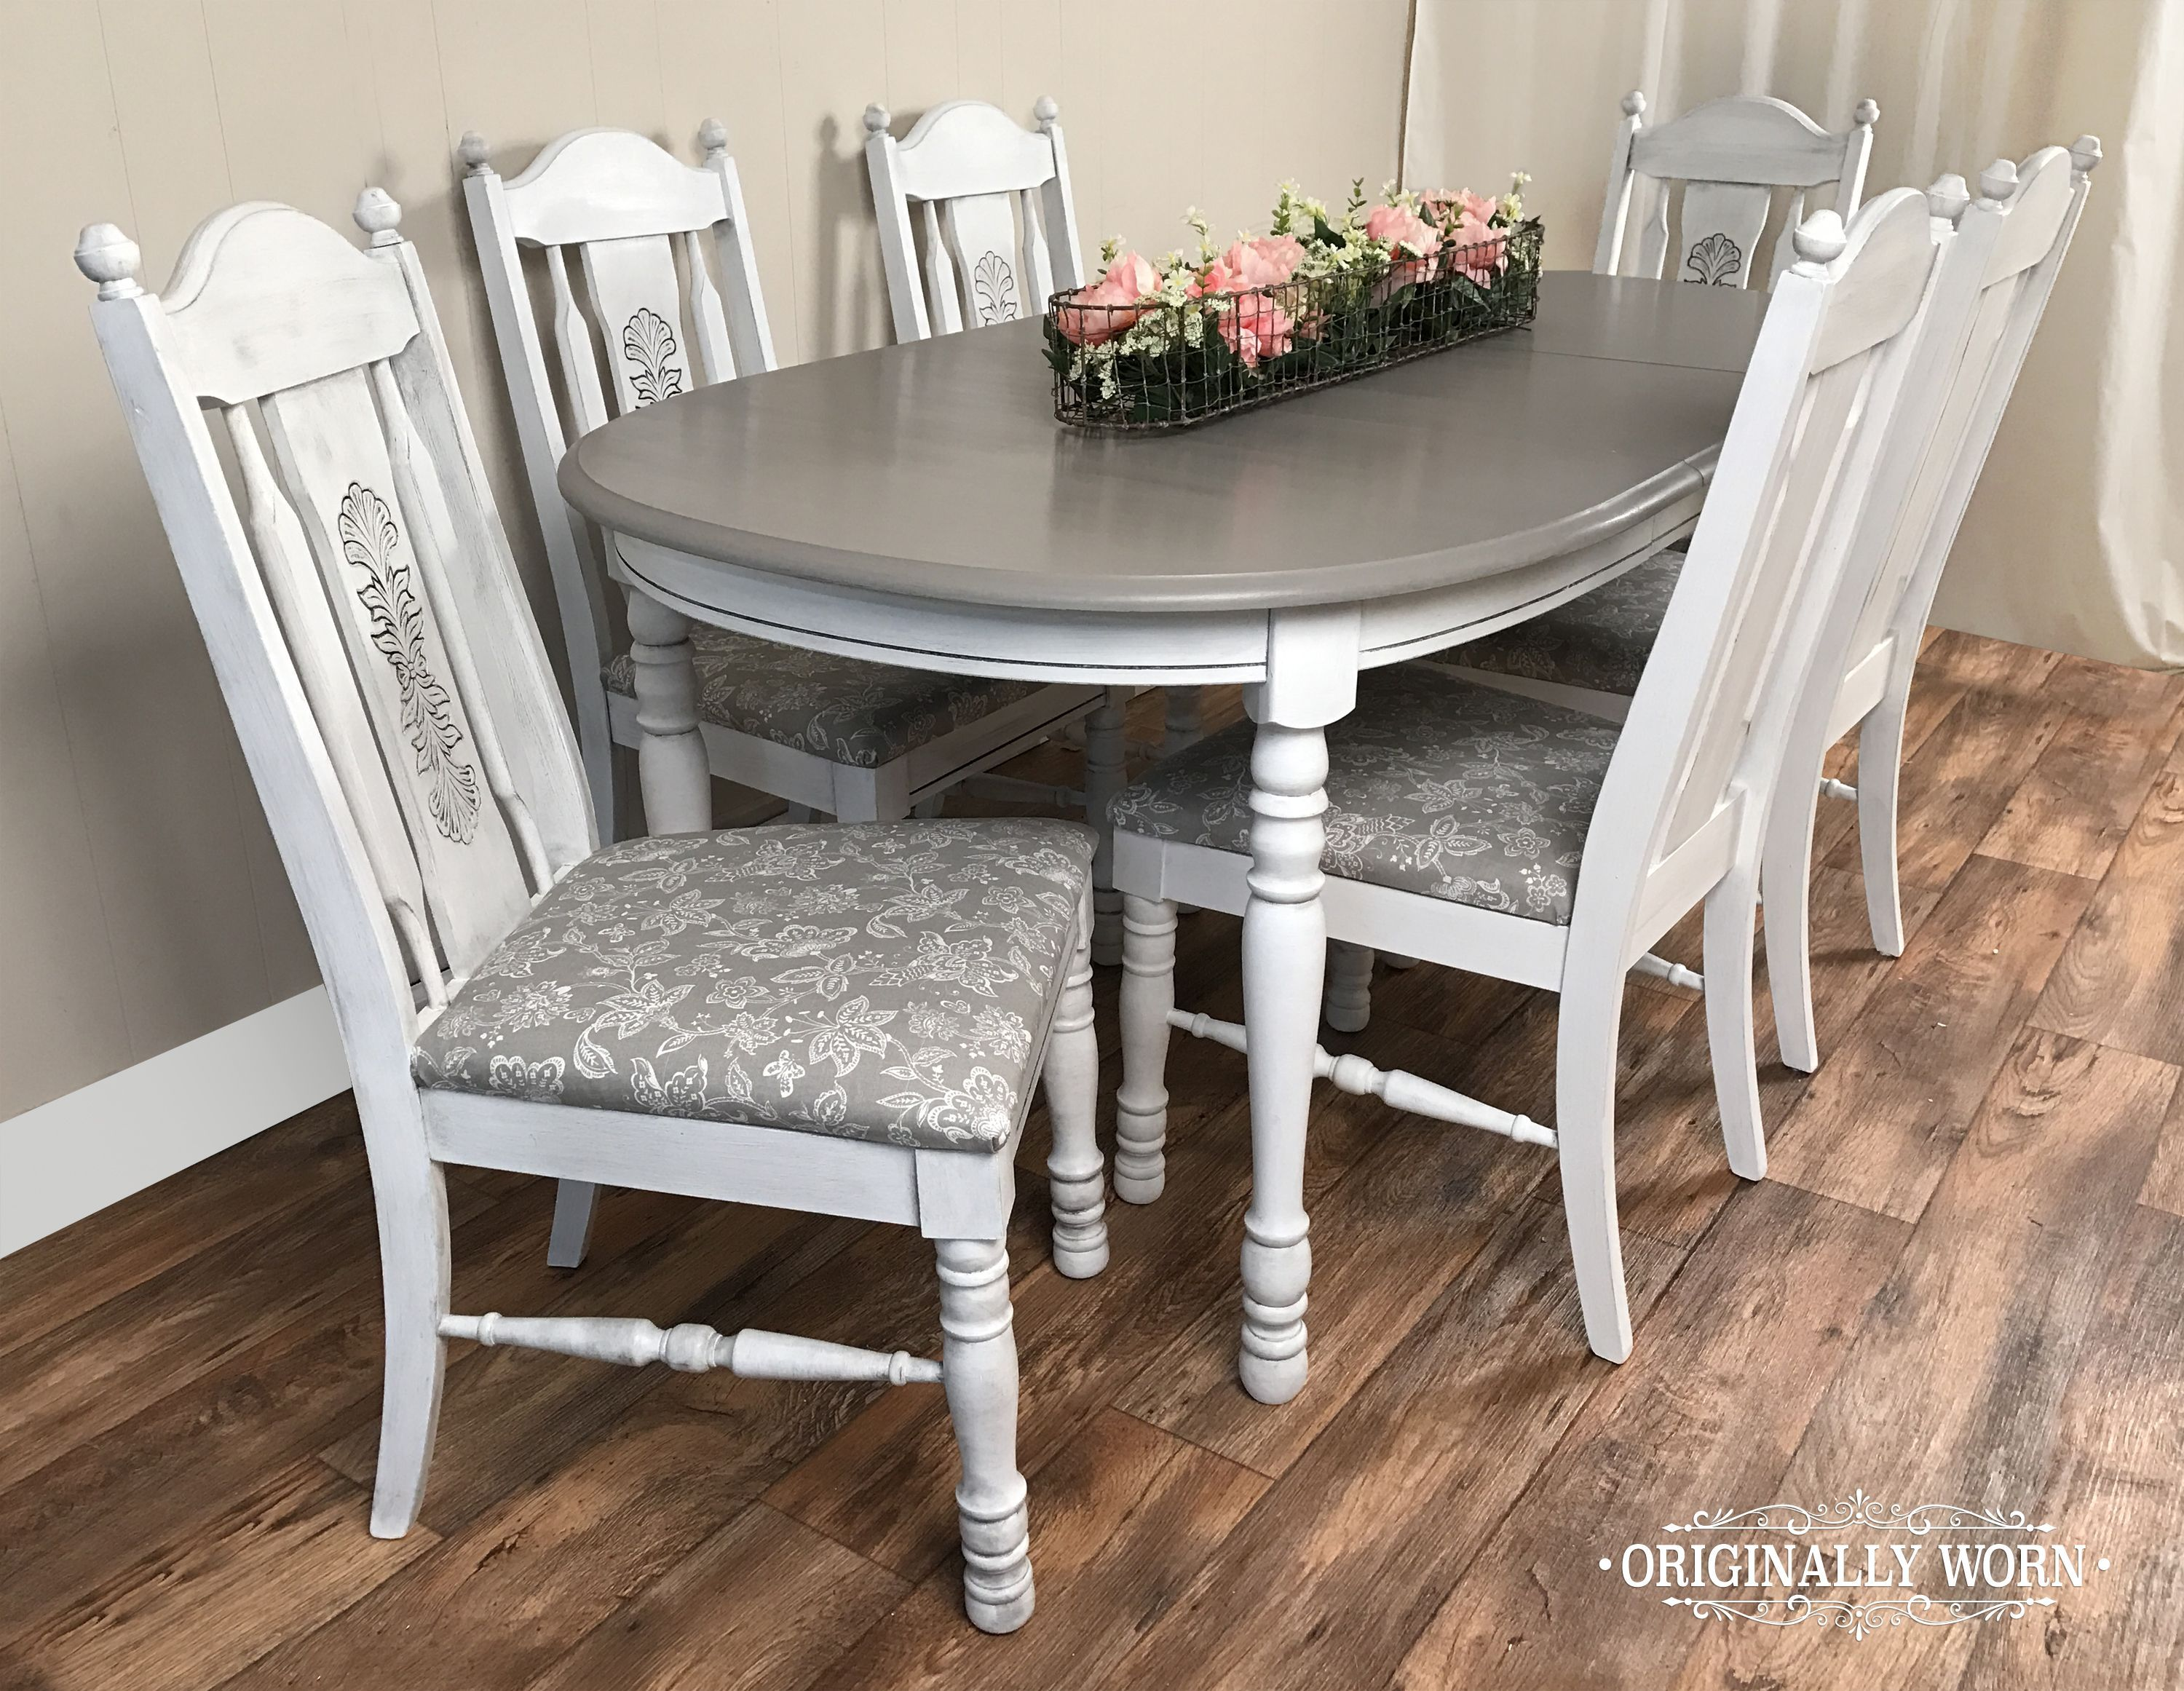 7 Piece Oval Dining Set In Annie Sloan Chalk Paint In Pure White Fair White Oval Dining Room Table 2018